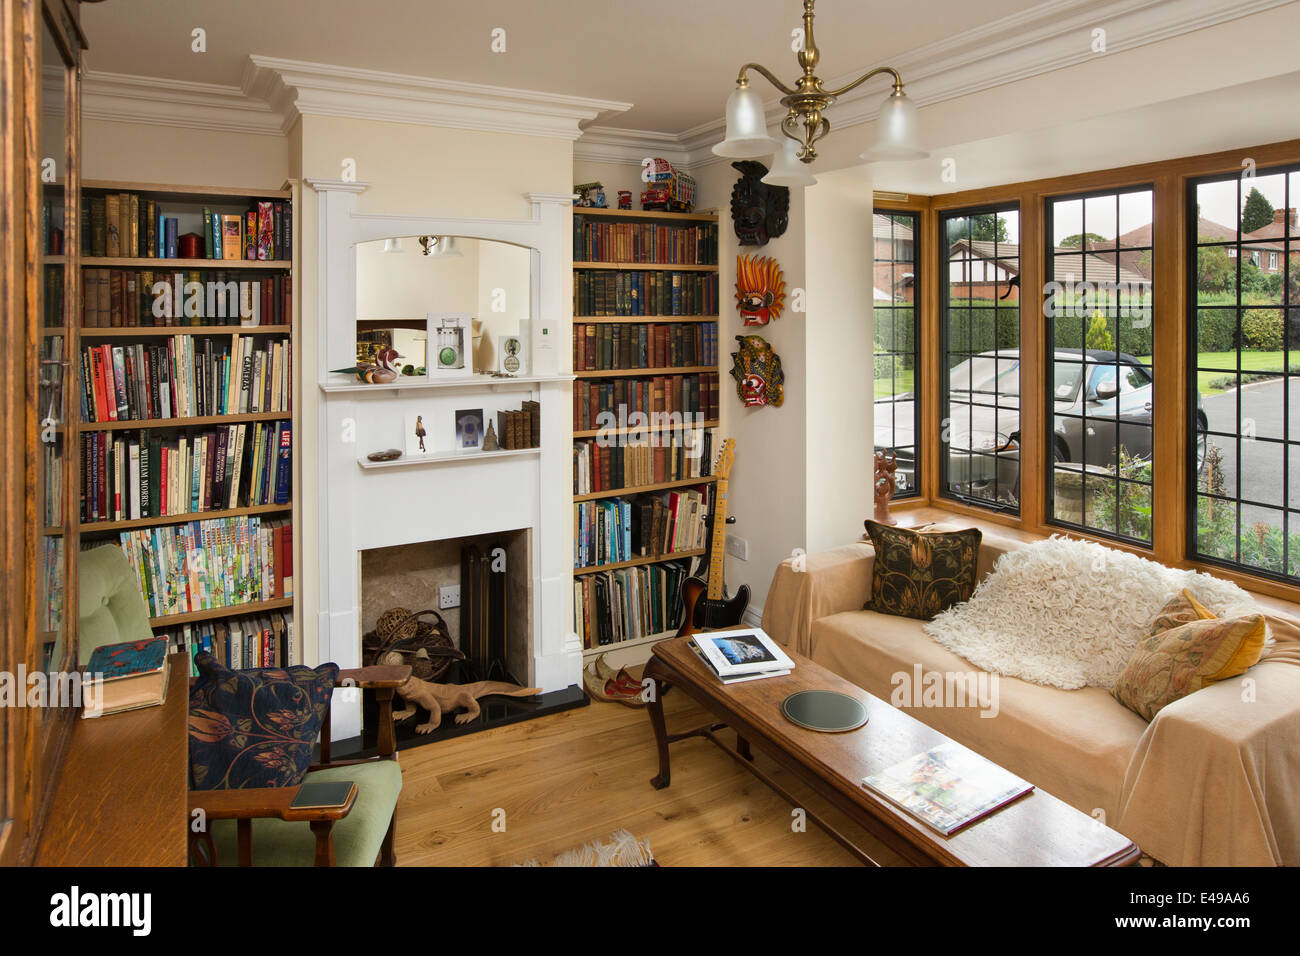 cosy living room stock photos cosy living room stock images alamy